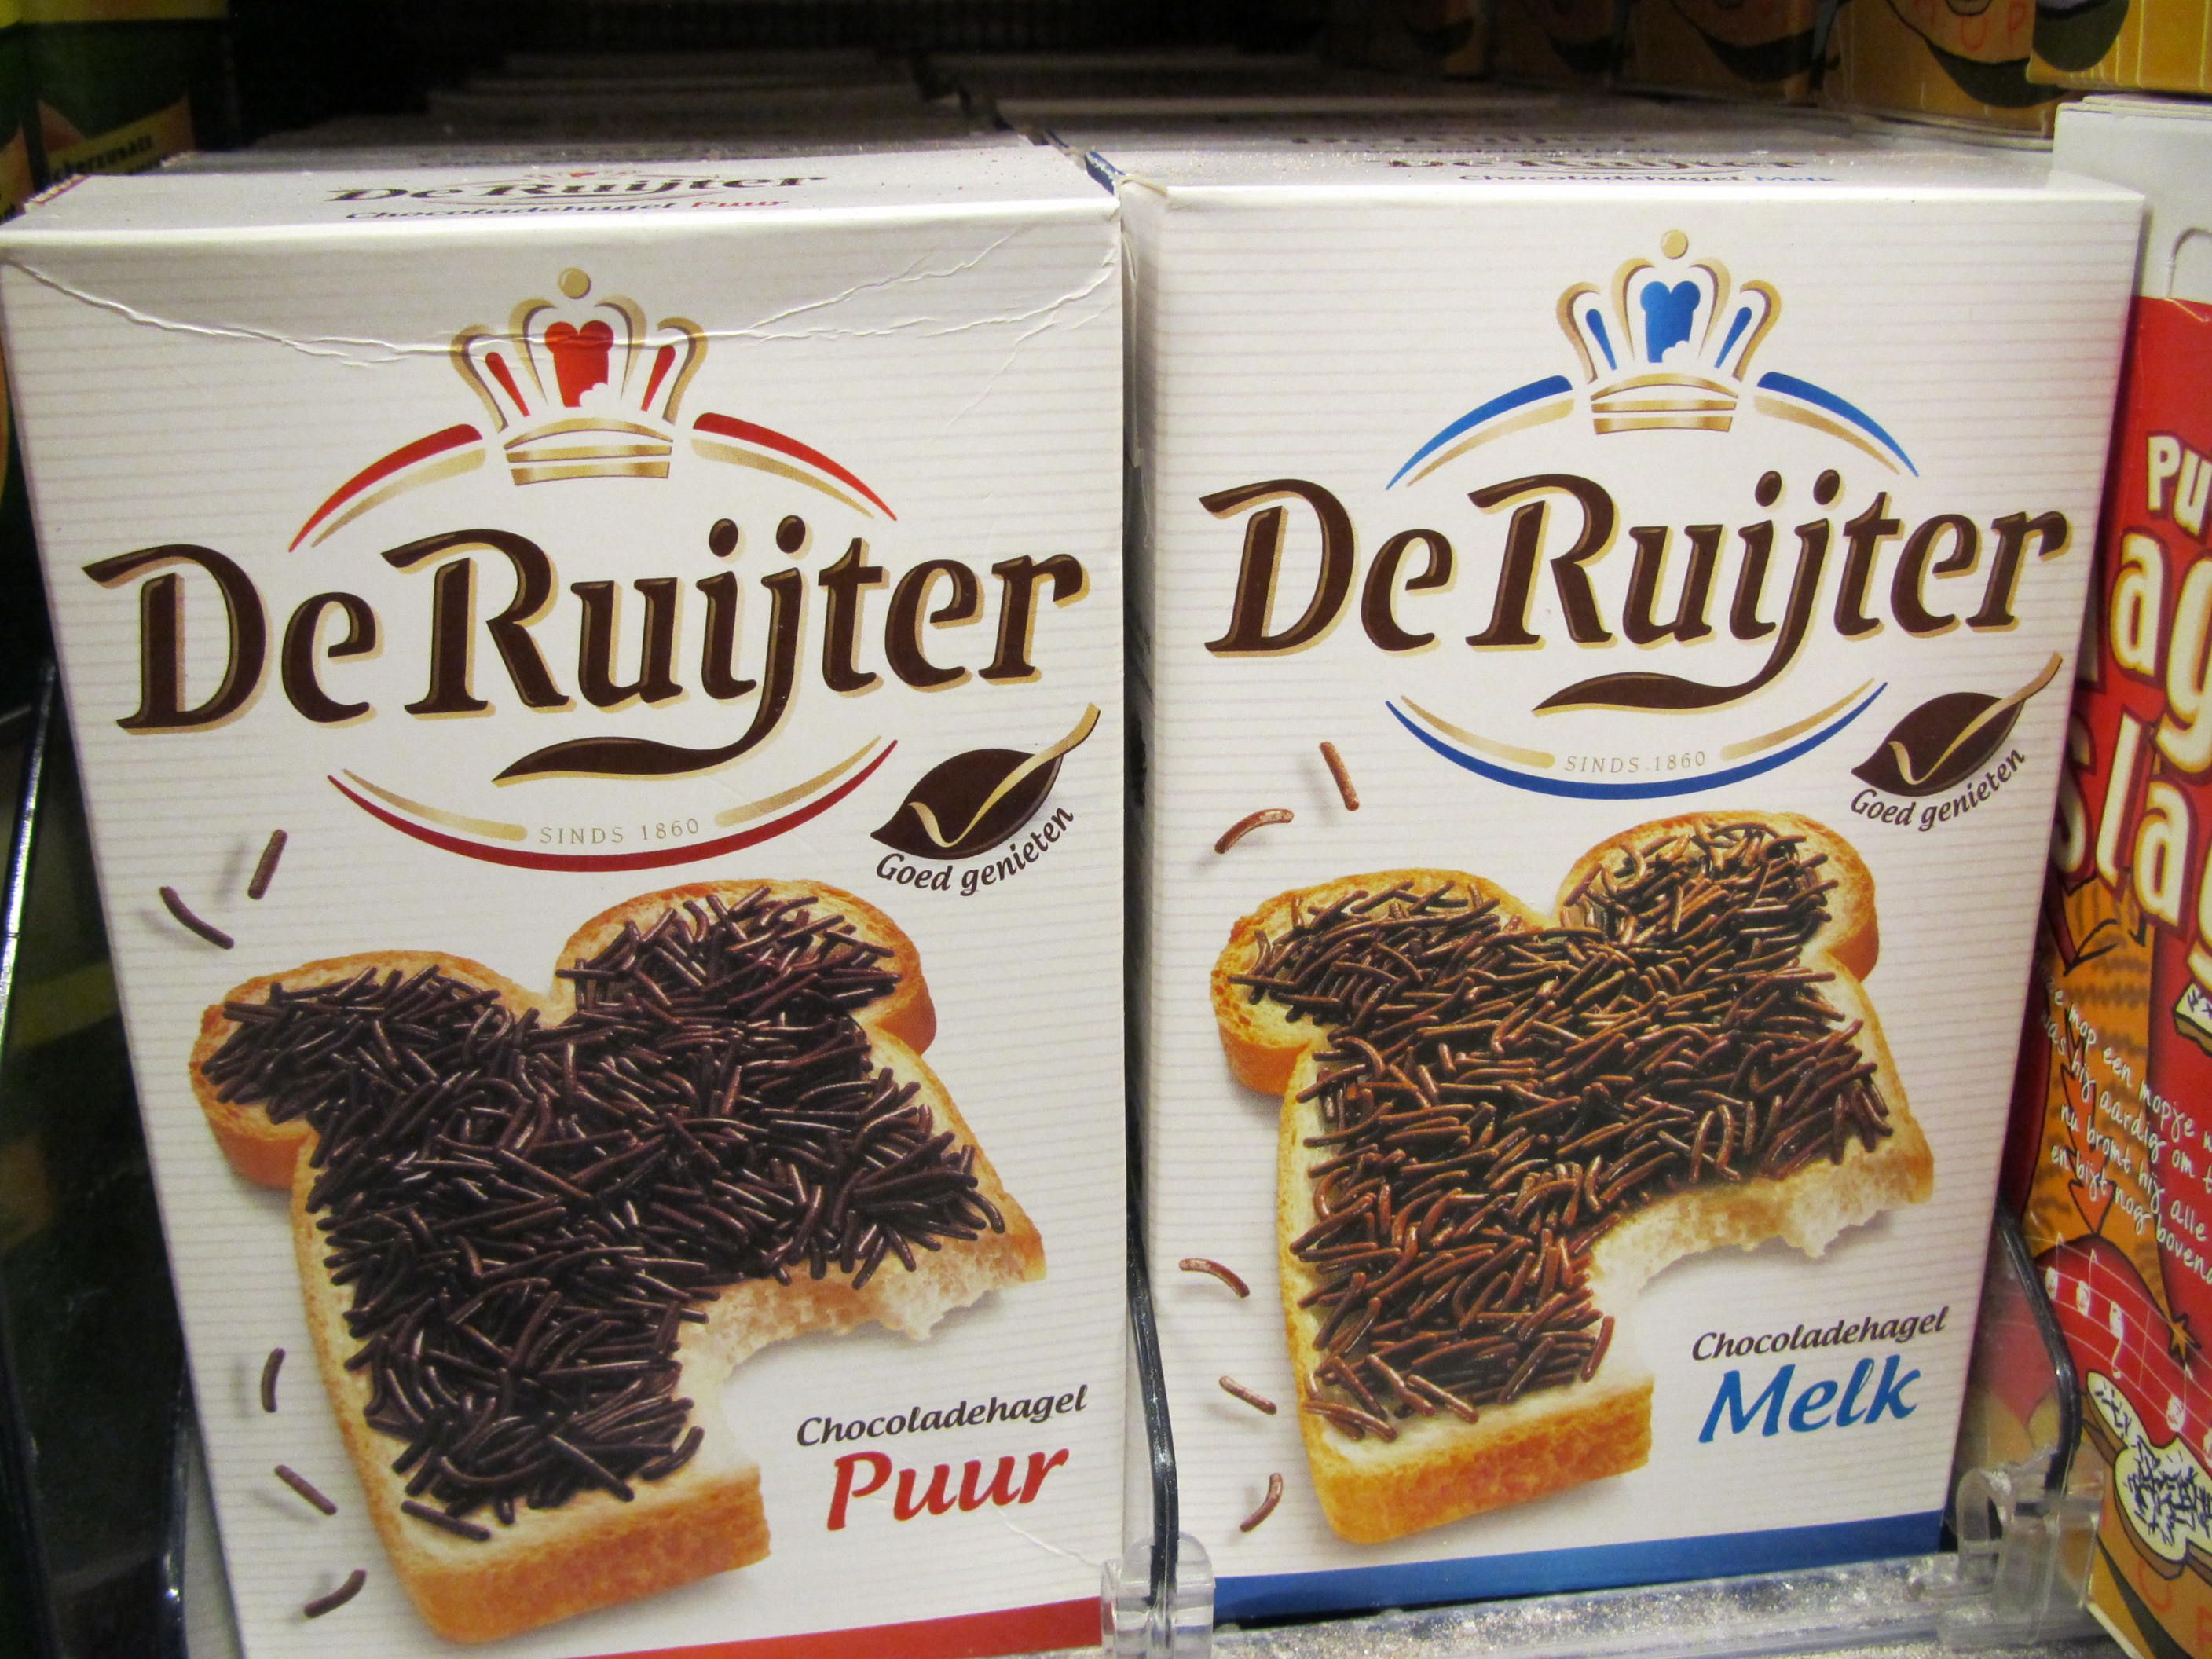 hagelslag, chocolate for on a sandwich, typical Dutch food ...